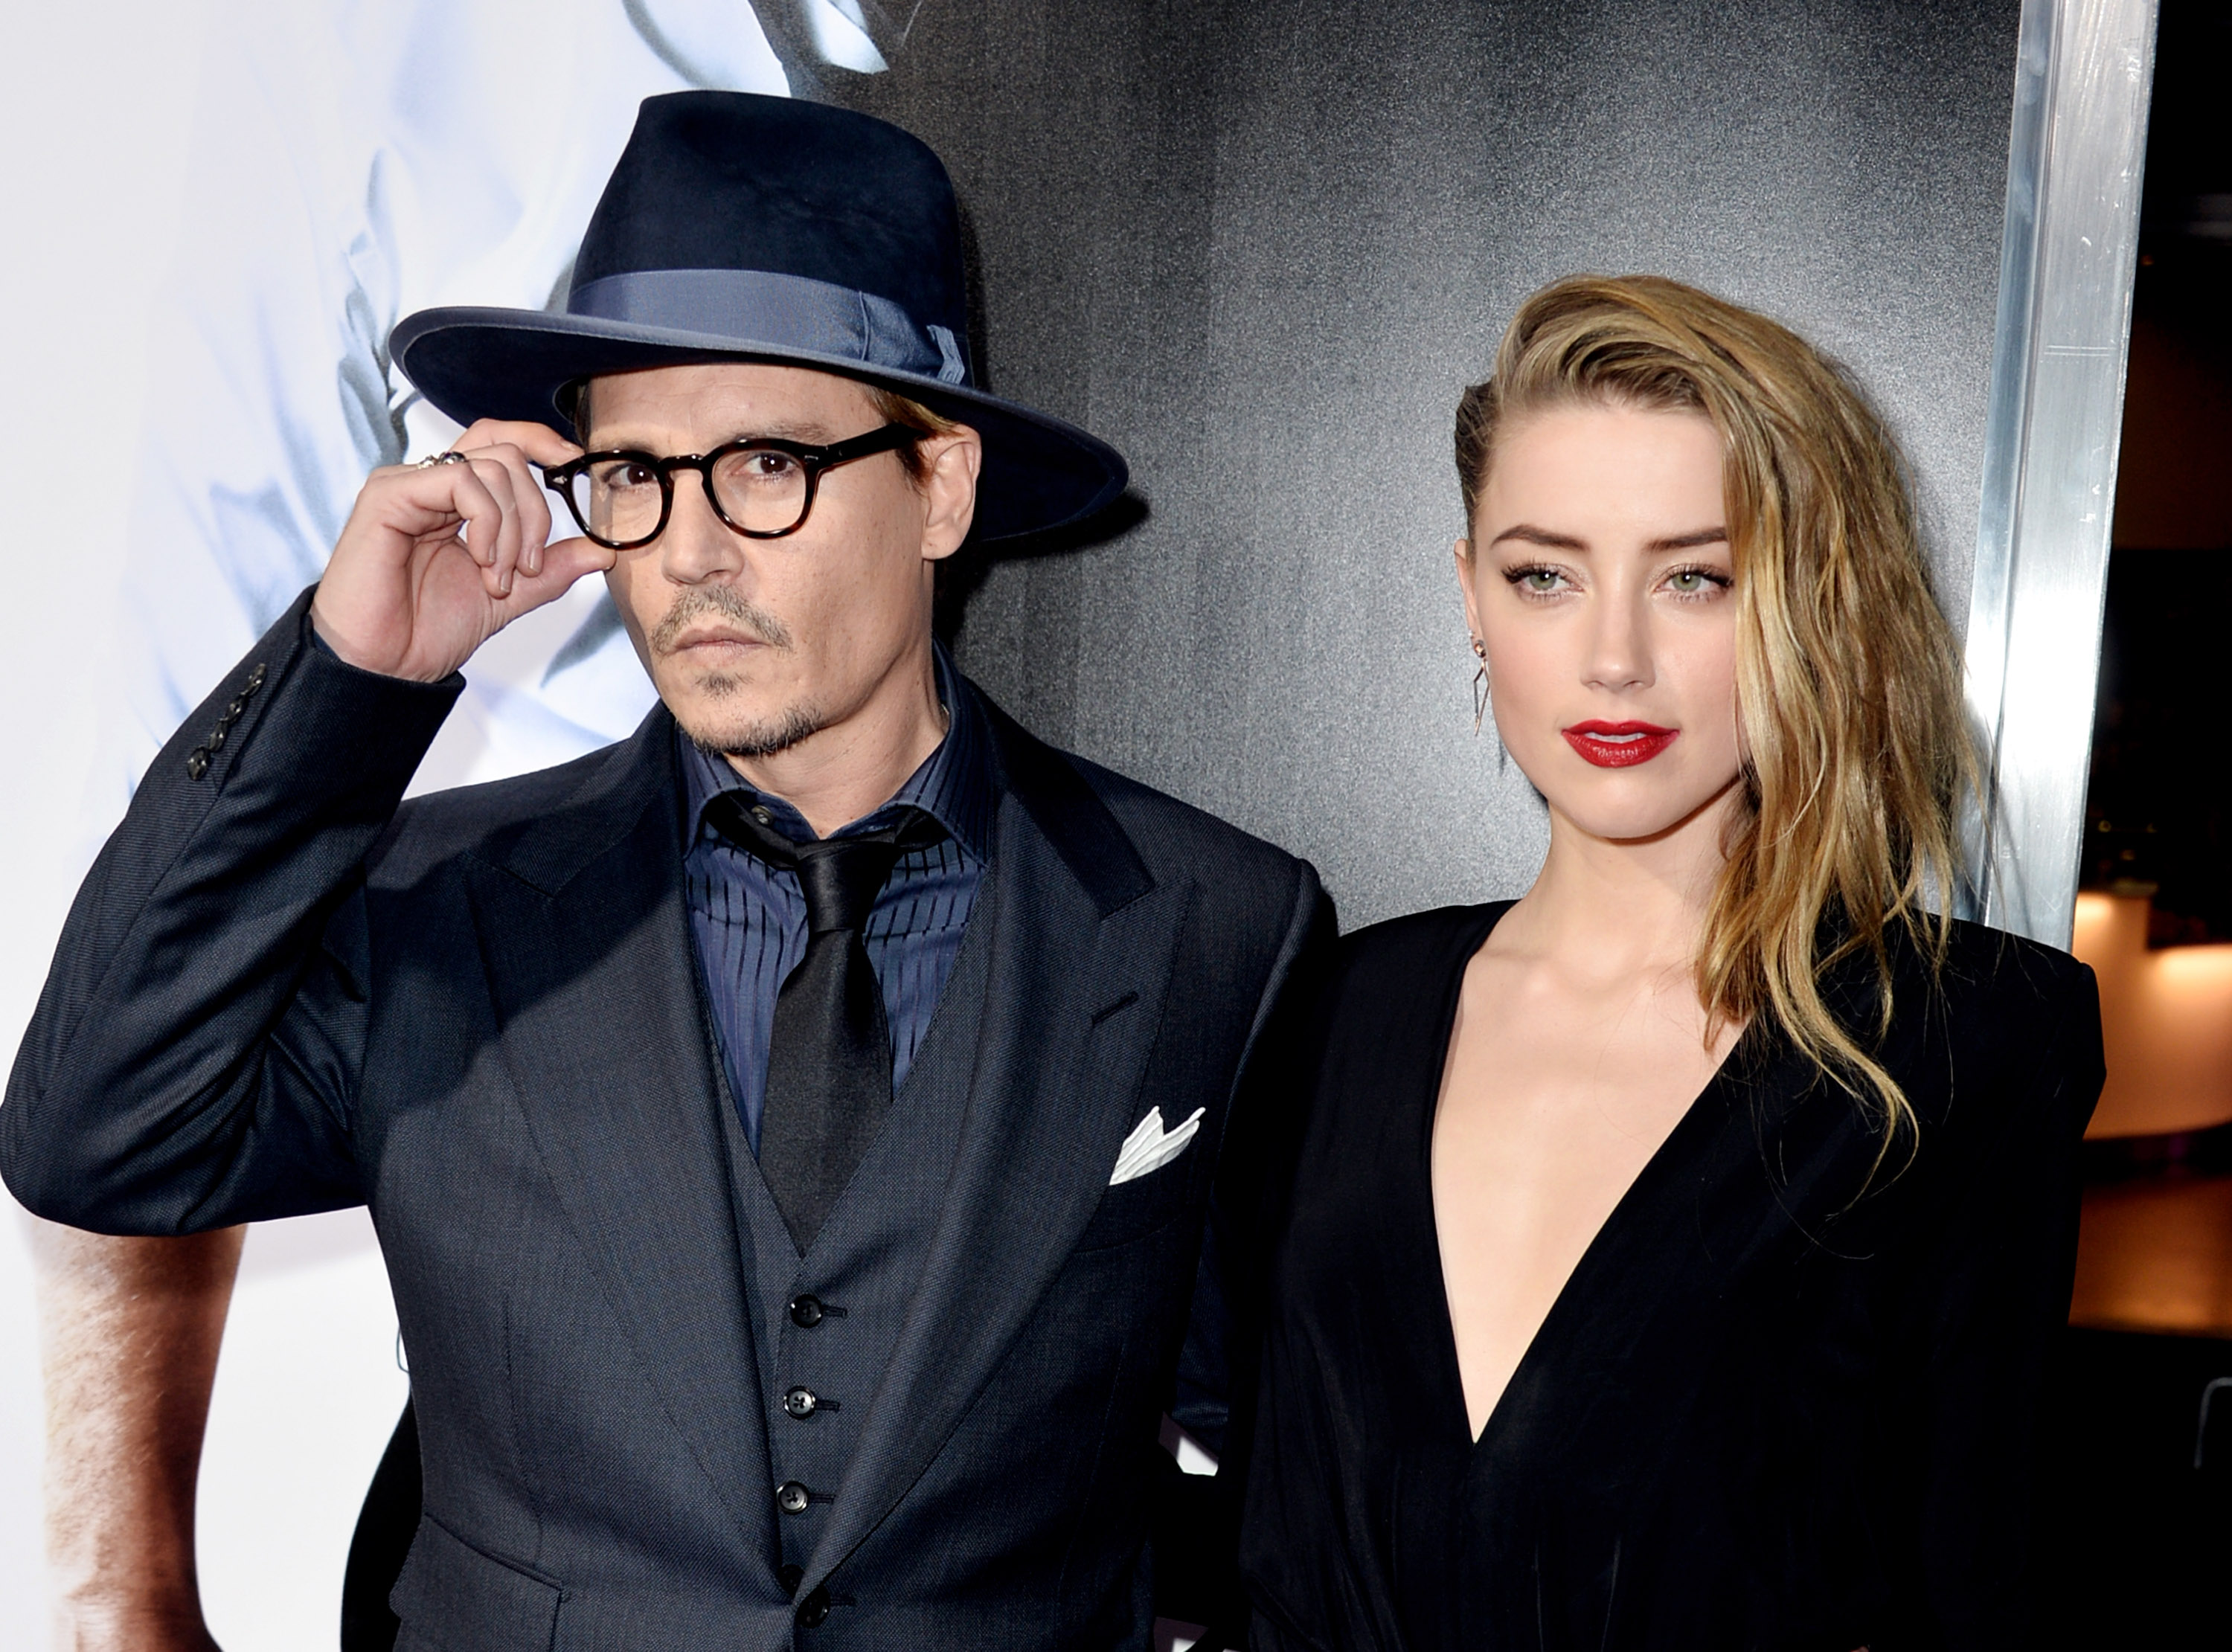 """LOS ANGELES, CA - FEBRUARY 12: Actor Johnny Depp (L) and his fiancee actress Amber Heard arrive at the premiere of Relativity Media's """"3 Days To Kill"""" at the Arclight Theatre on February 12, 2014 in Los Angeles, California. (Photo by Kevin Winter/Getty Images)"""